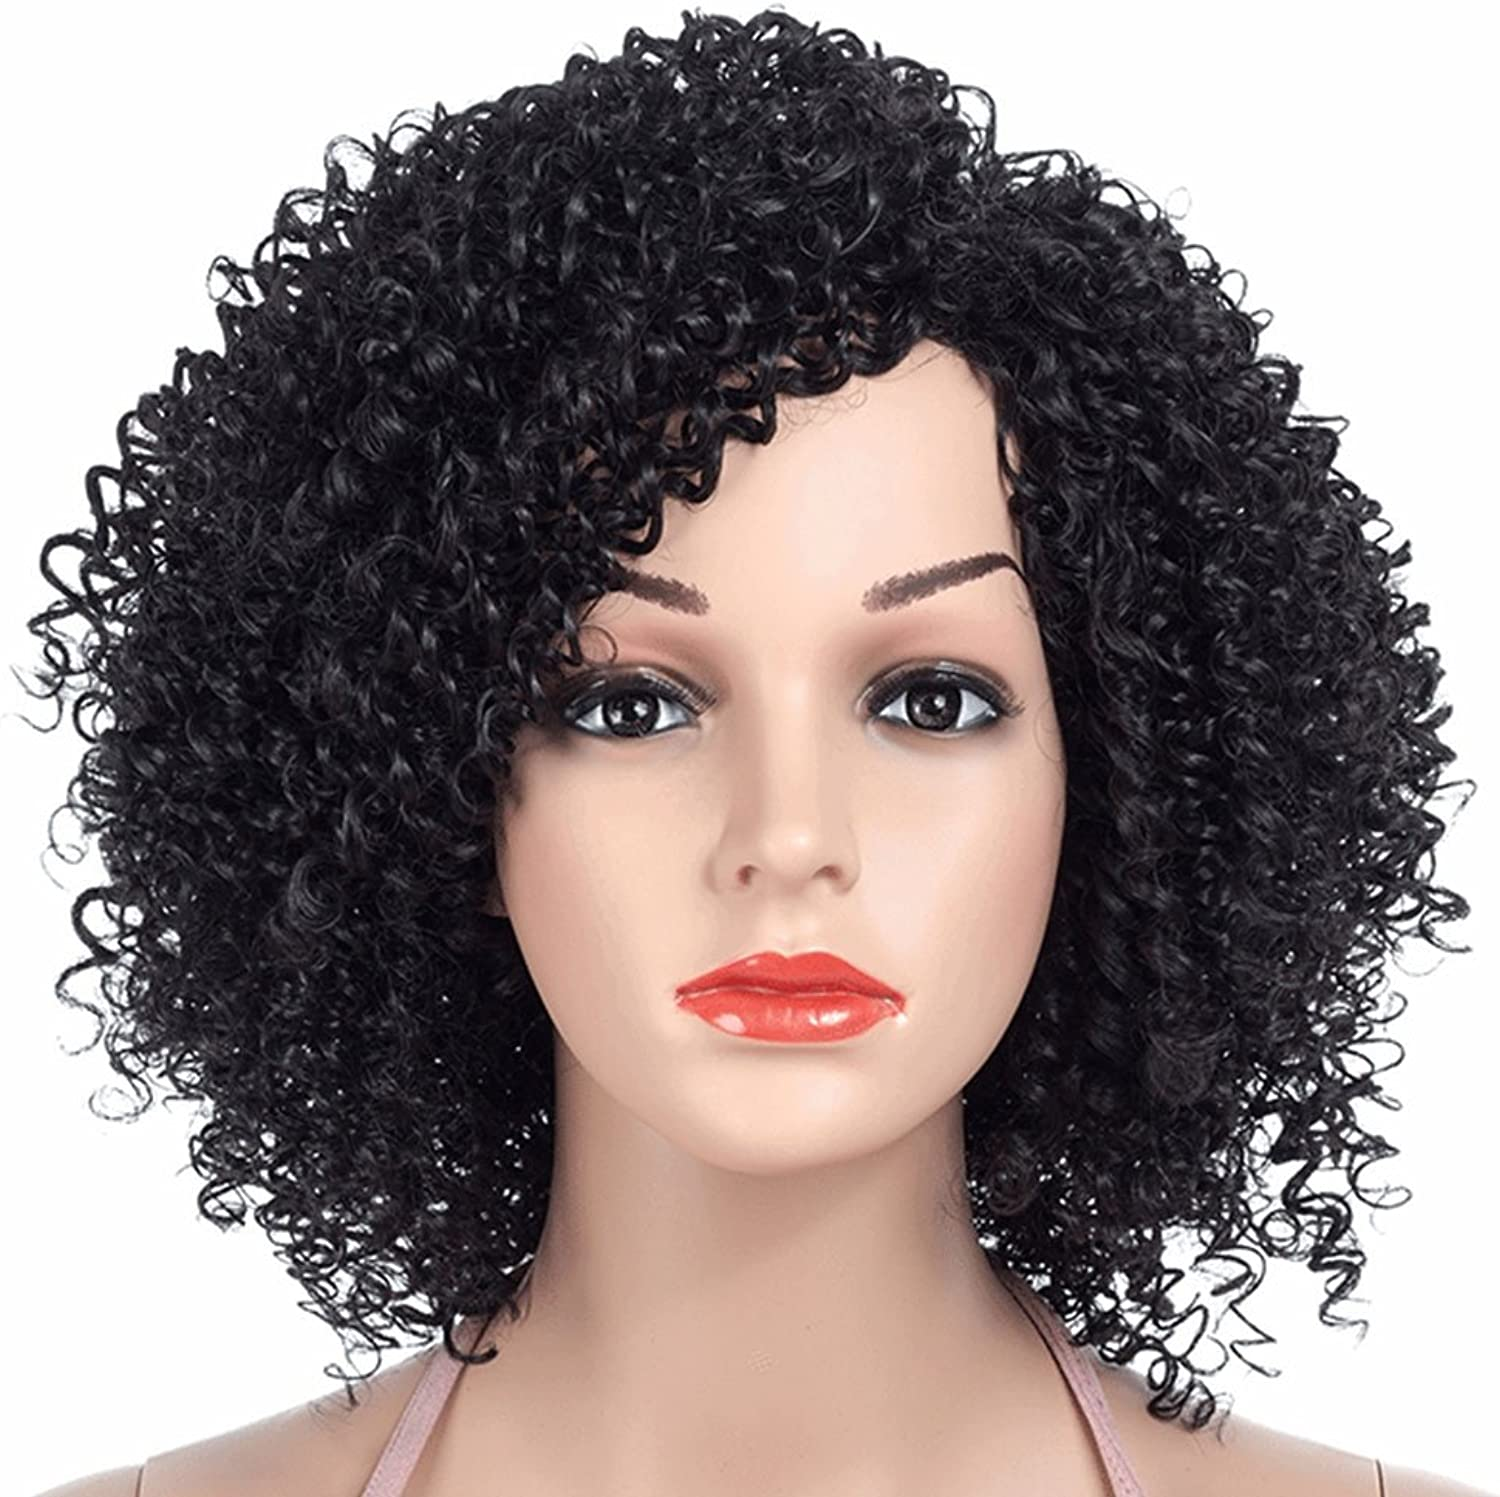 SHUAIGE Small Curly Short Hair Female Wigs European and American Fashion Fluffy African Black Partial Short Hair Holiday Party Cosplay Chemical Fiber High Temperature Silk Synthetic Wig 36cm200g